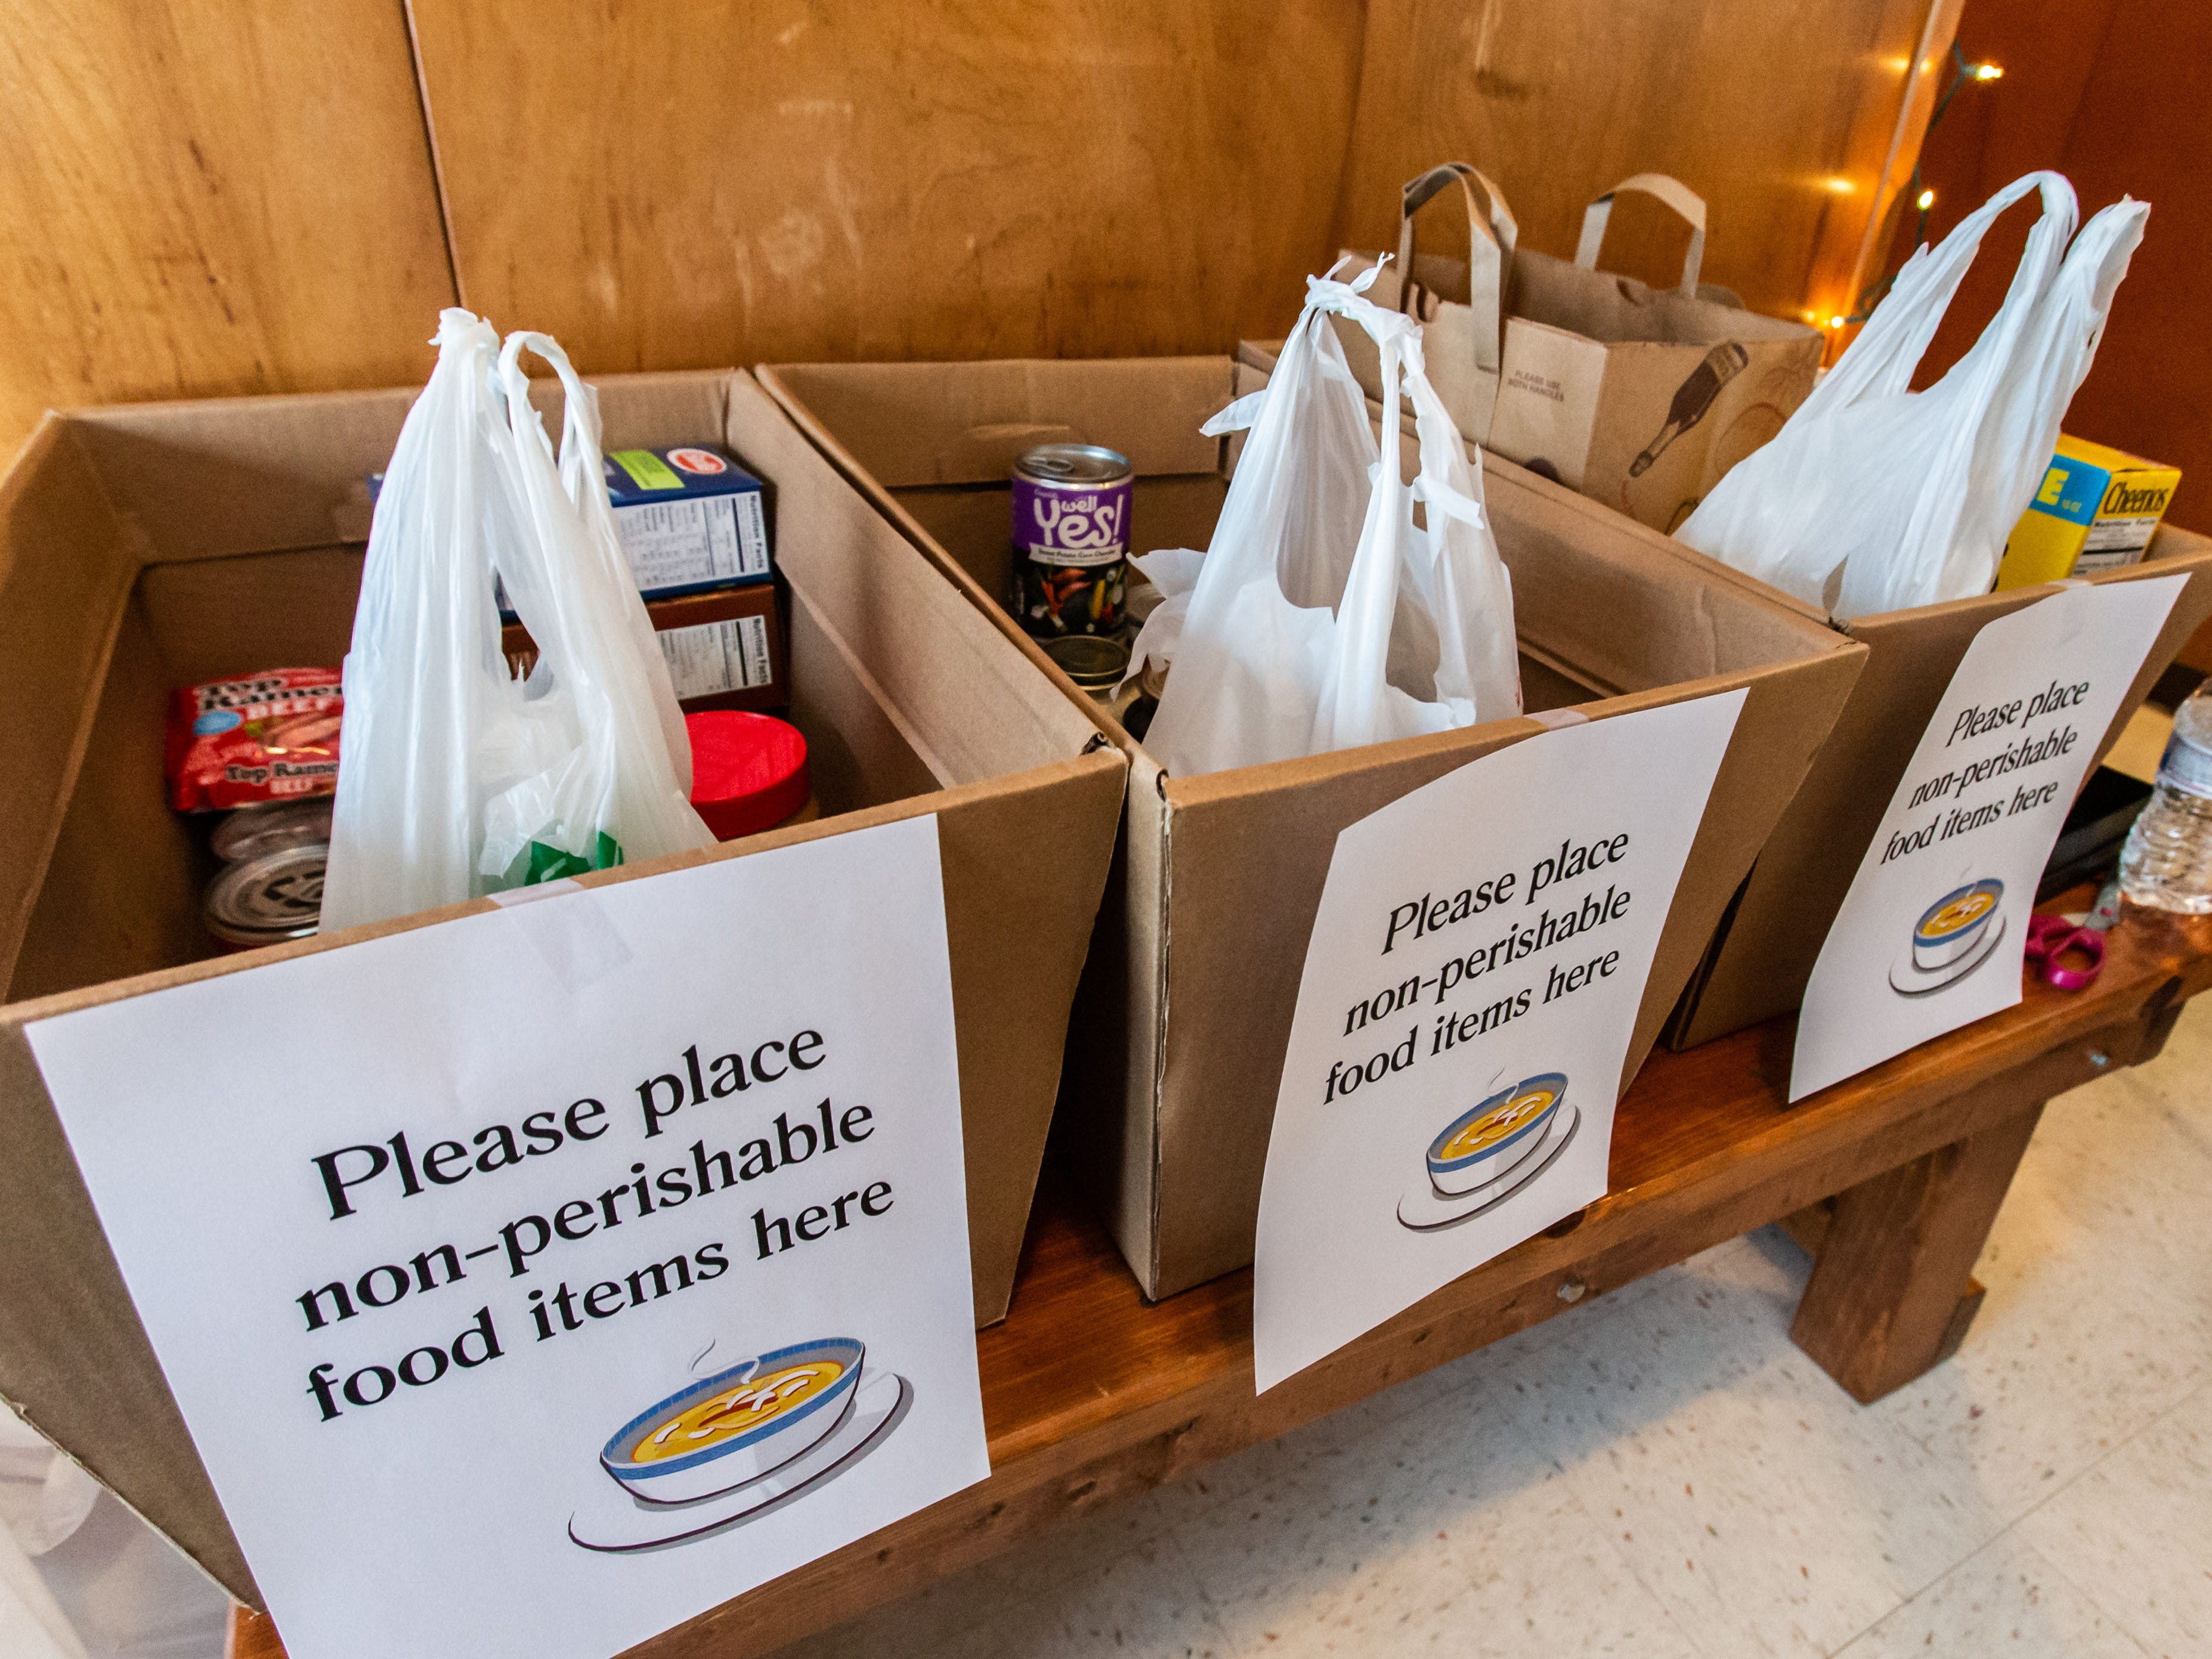 Attendees drop off donations during the 8th annual Empty Bowls event at the LaFollette Park Pavilion in West Allis on Saturday, March 2, 2019. The goal of the event, hosted by the Friends of LaFollette Park, is to collect food and raise funds for West Allis food pantries.